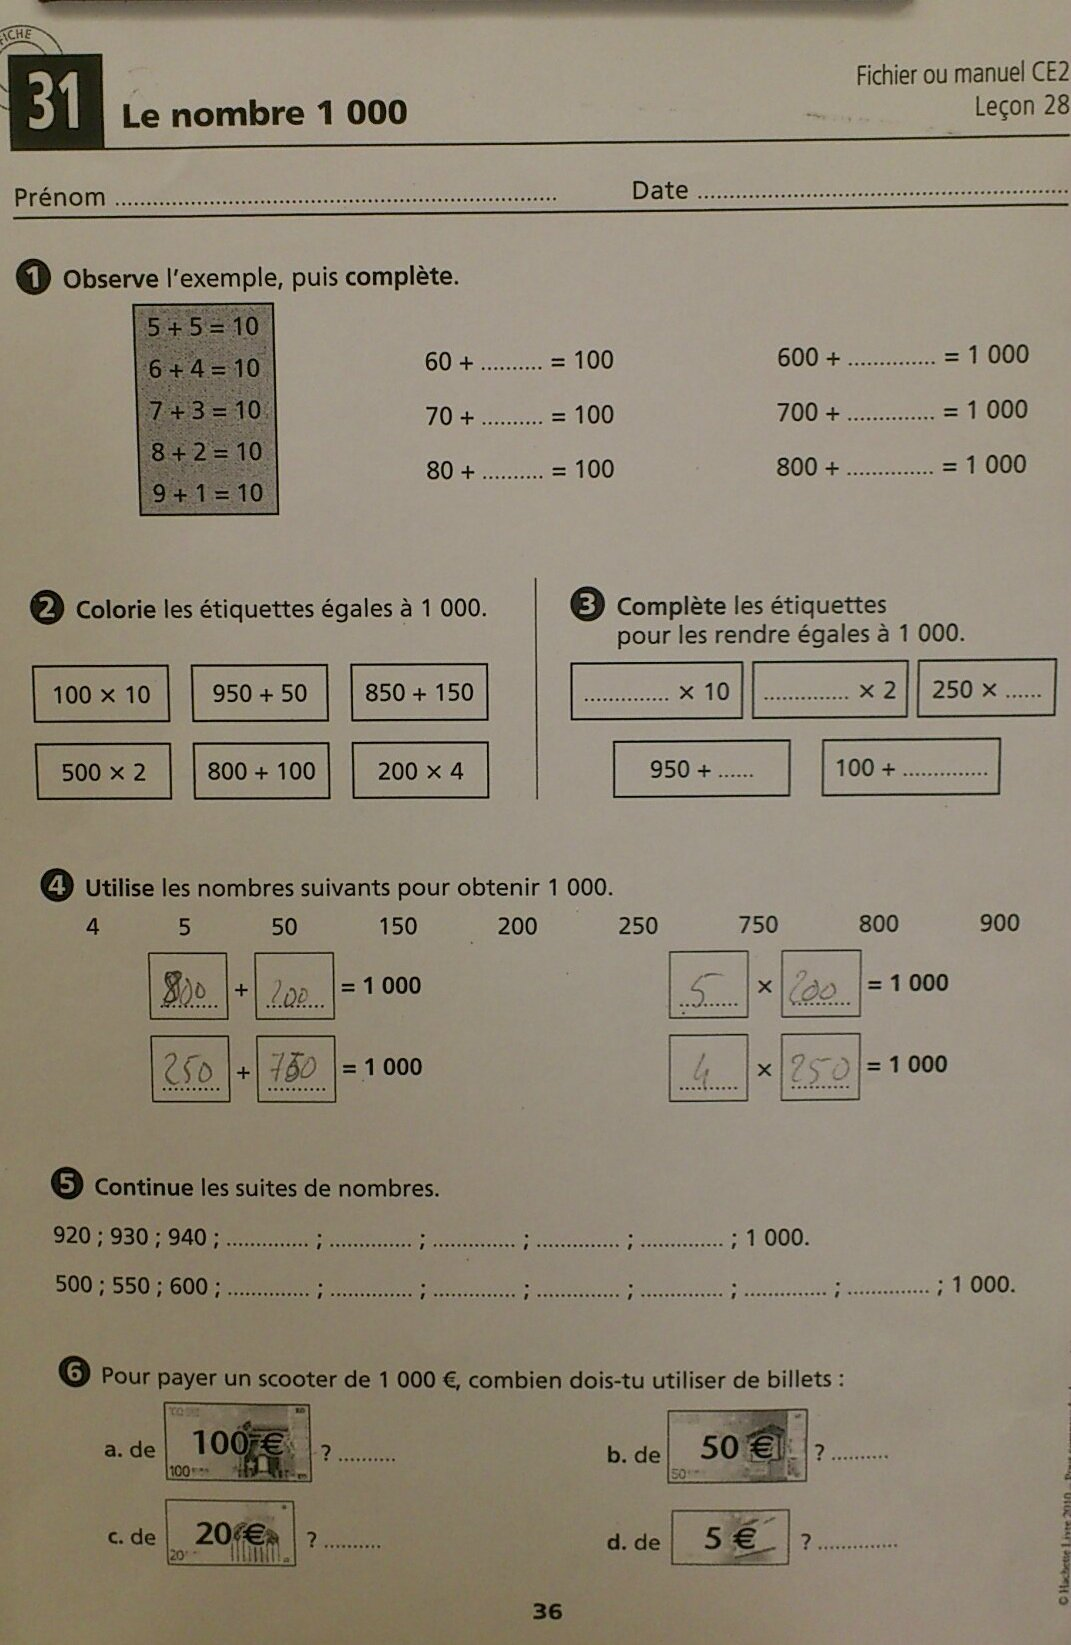 Journ e du vendredi 11 janvier 2013 ce2 de l 39 cole des for Revision table de multiplication